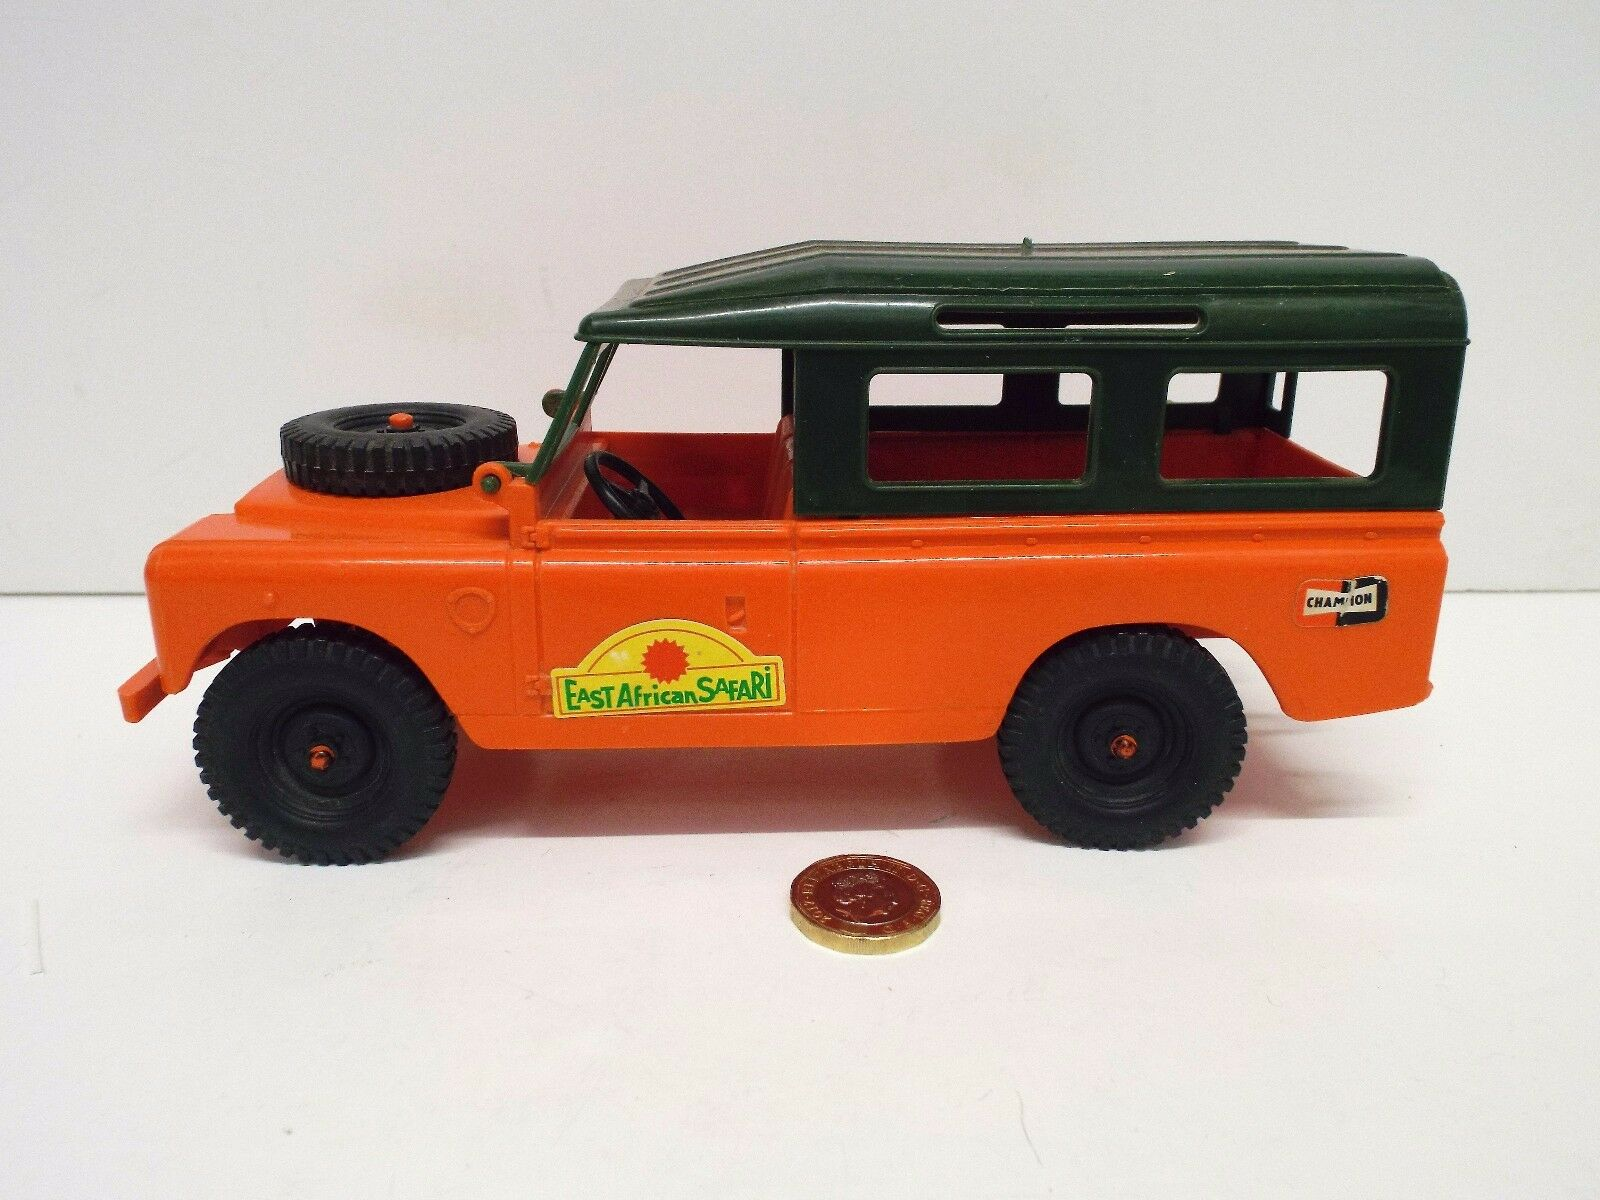 VINTAGE PLASTIC 8 1 2  EAST AFRICA SAFARI LAND ROVER BY BREVETTATO ITALY (AM255)